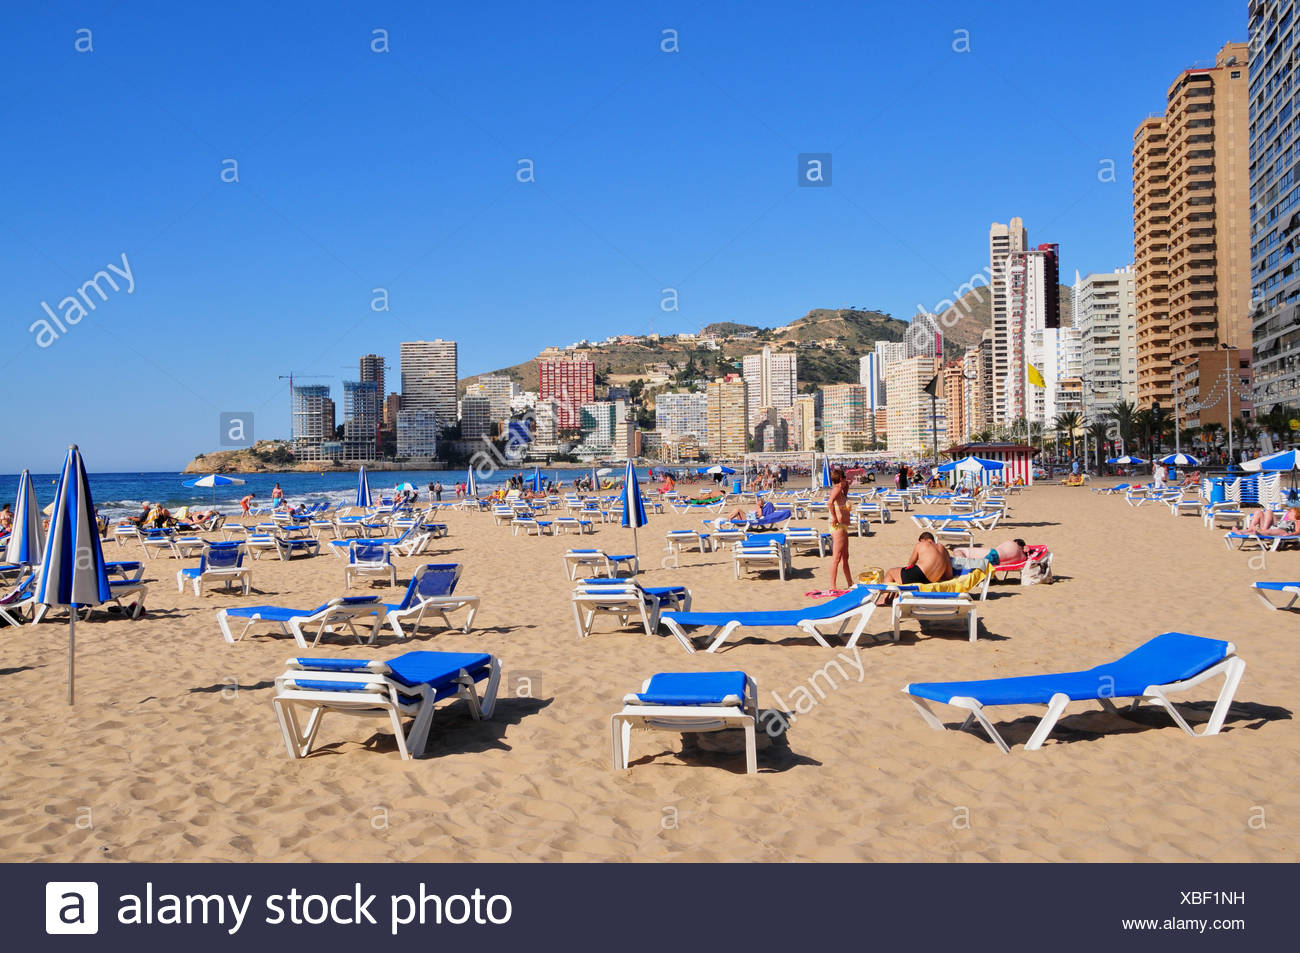 geography / travel, Spain, vacuity loungers at beach of Benidorm, Costa Blanca, Additional-Rights-Clearance-Info-Not-Available - Stock Image